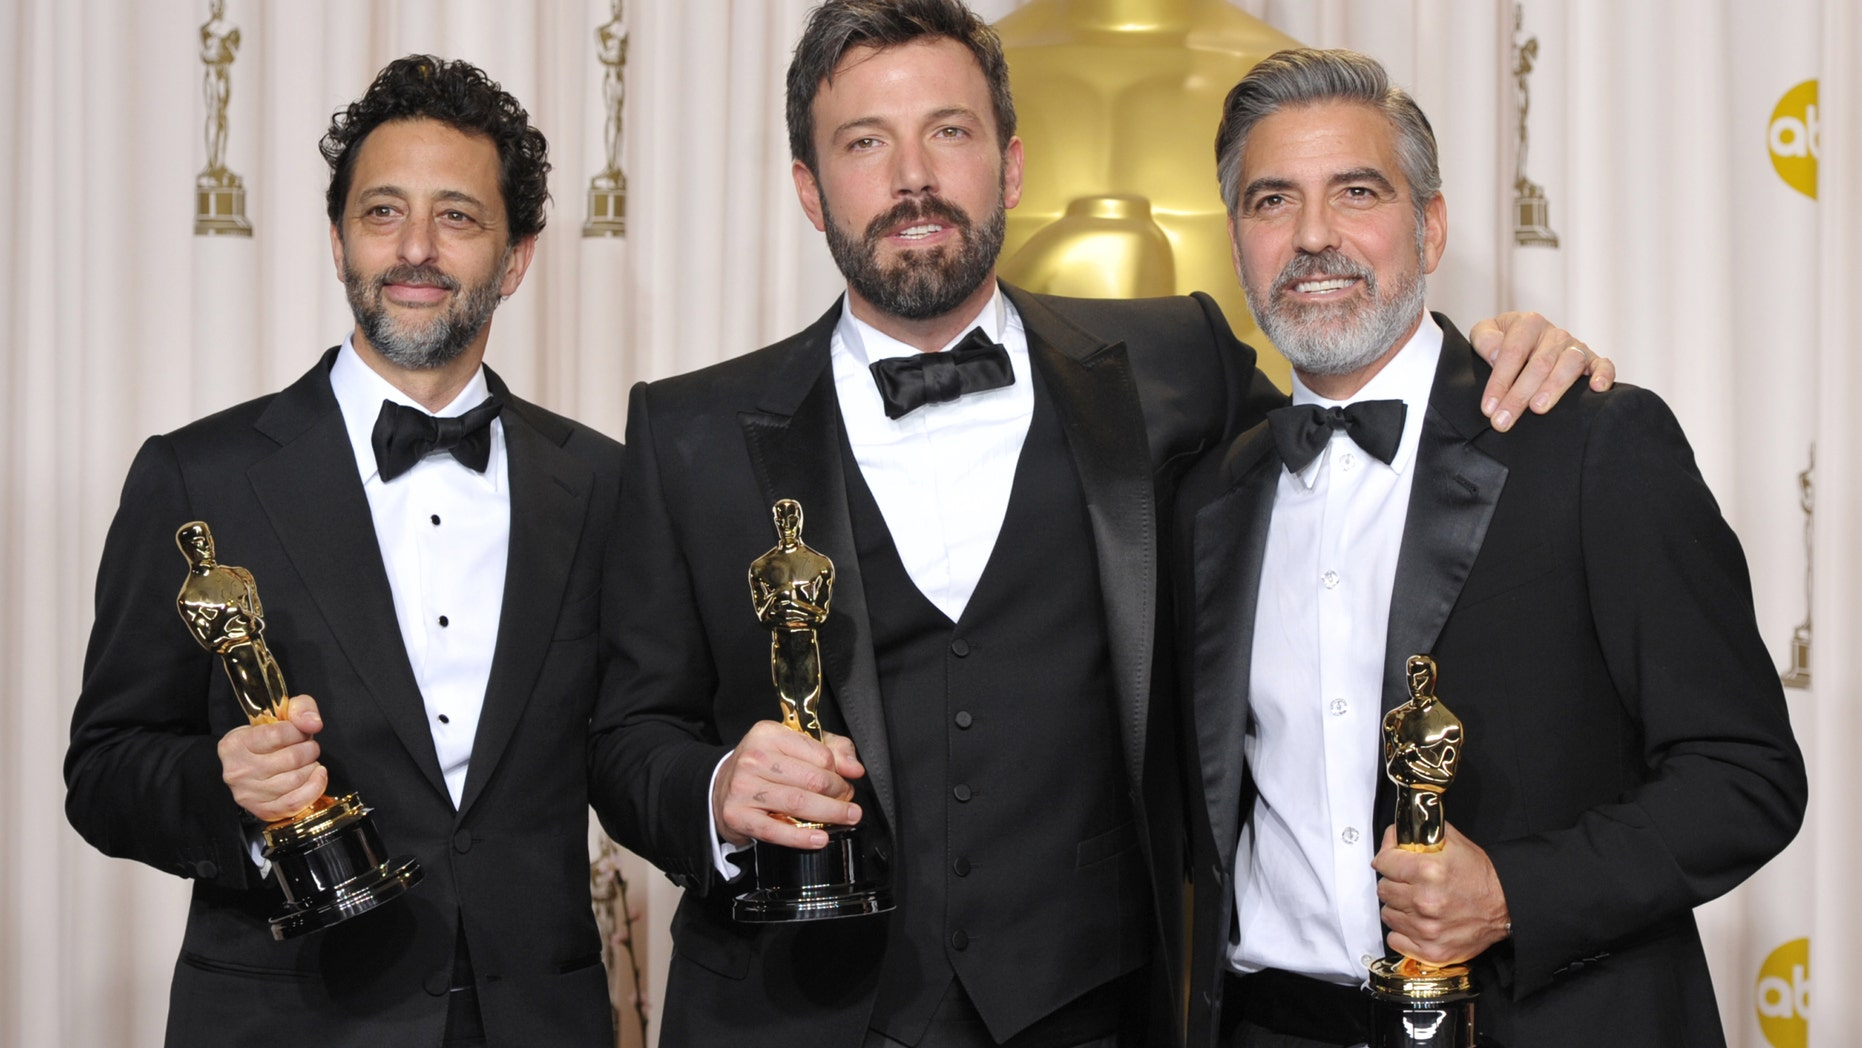 """Grant Heslov, from left, Ben Affleck, and George Clooney pose with their award for best picture for """"Argo"""" during the Oscars at the Dolby Theatre on Sunday Feb. 24, 2013, in Los Angeles."""